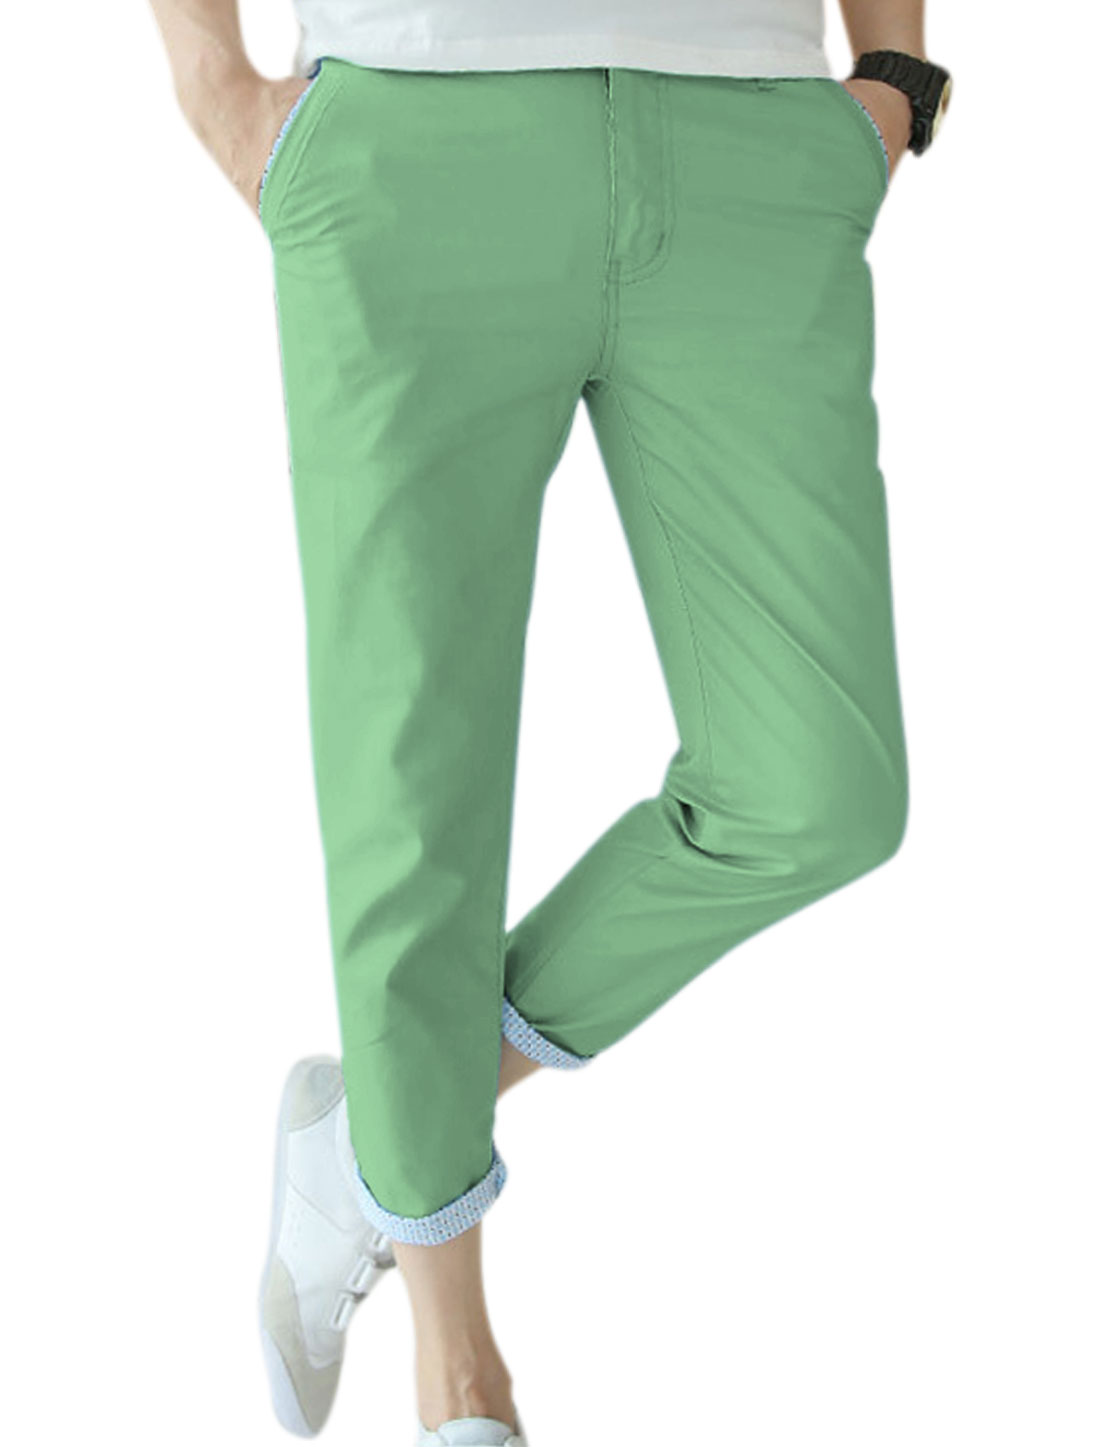 Men Zip Fly Button Closure Fashion Summer Wear Casual Cropped Pants Green W32